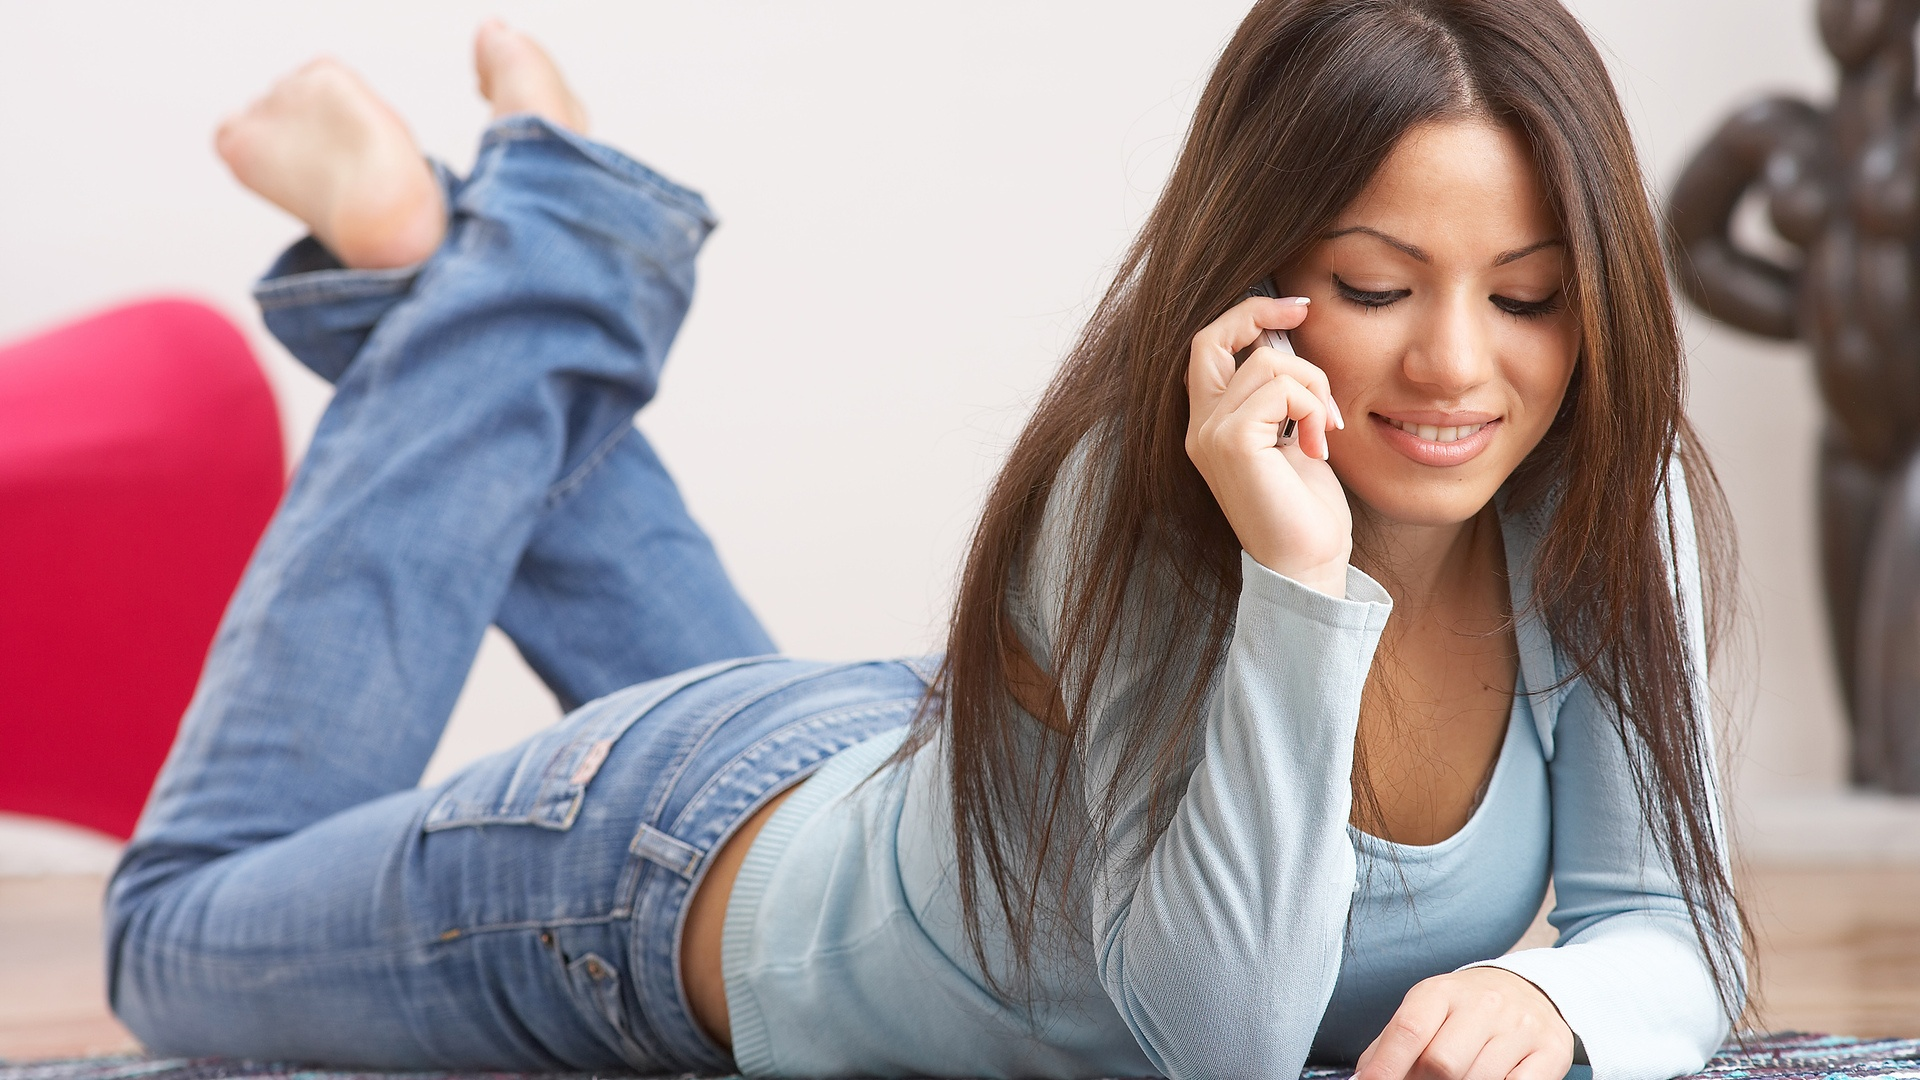 Girl to talk to online